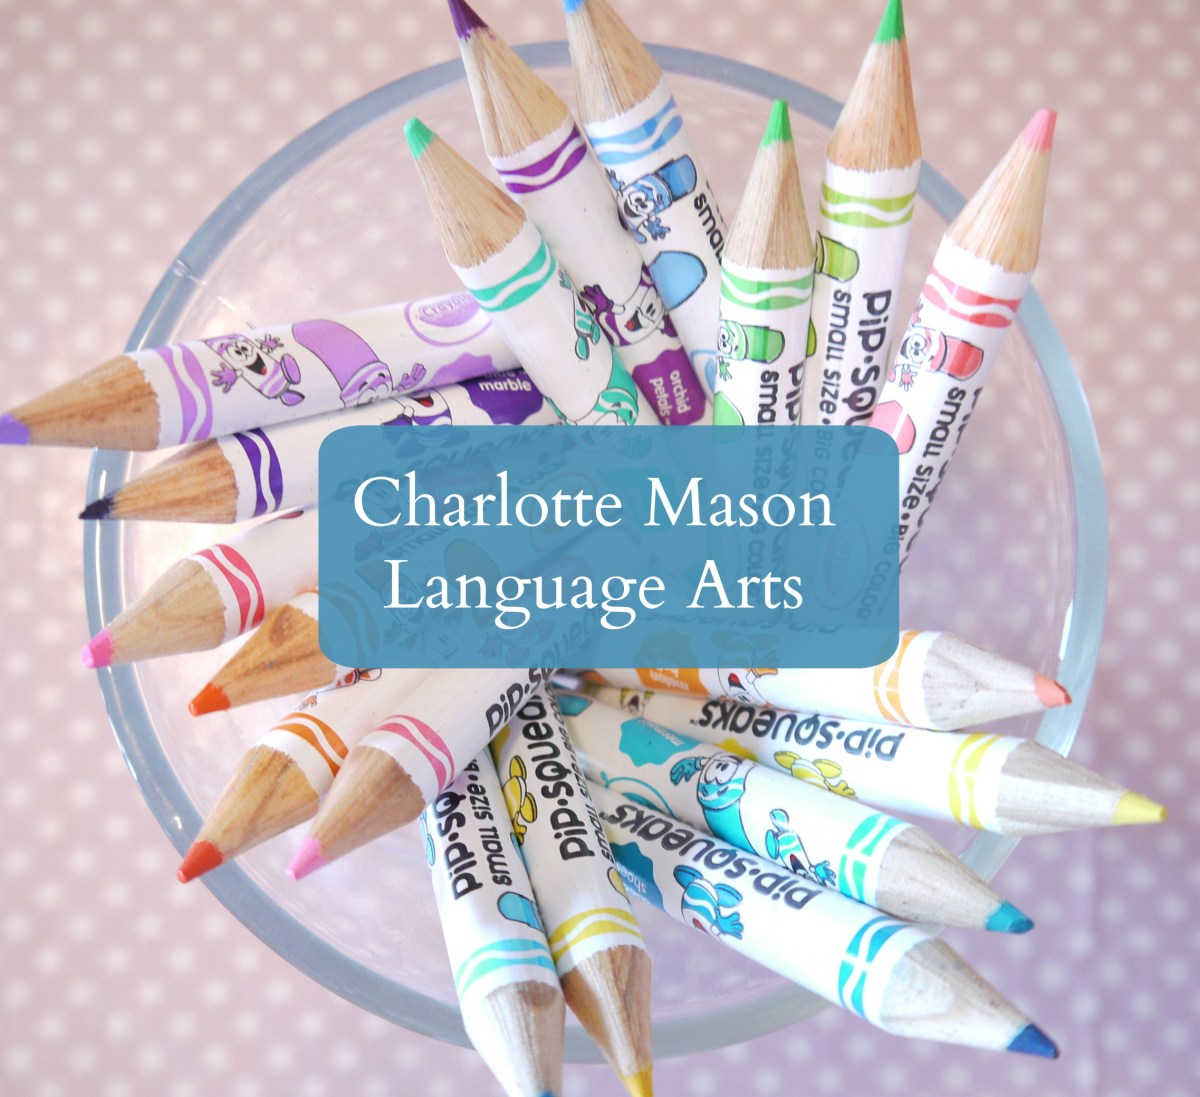 Considering - Charlotte Mason and Our Approach to Language Arts